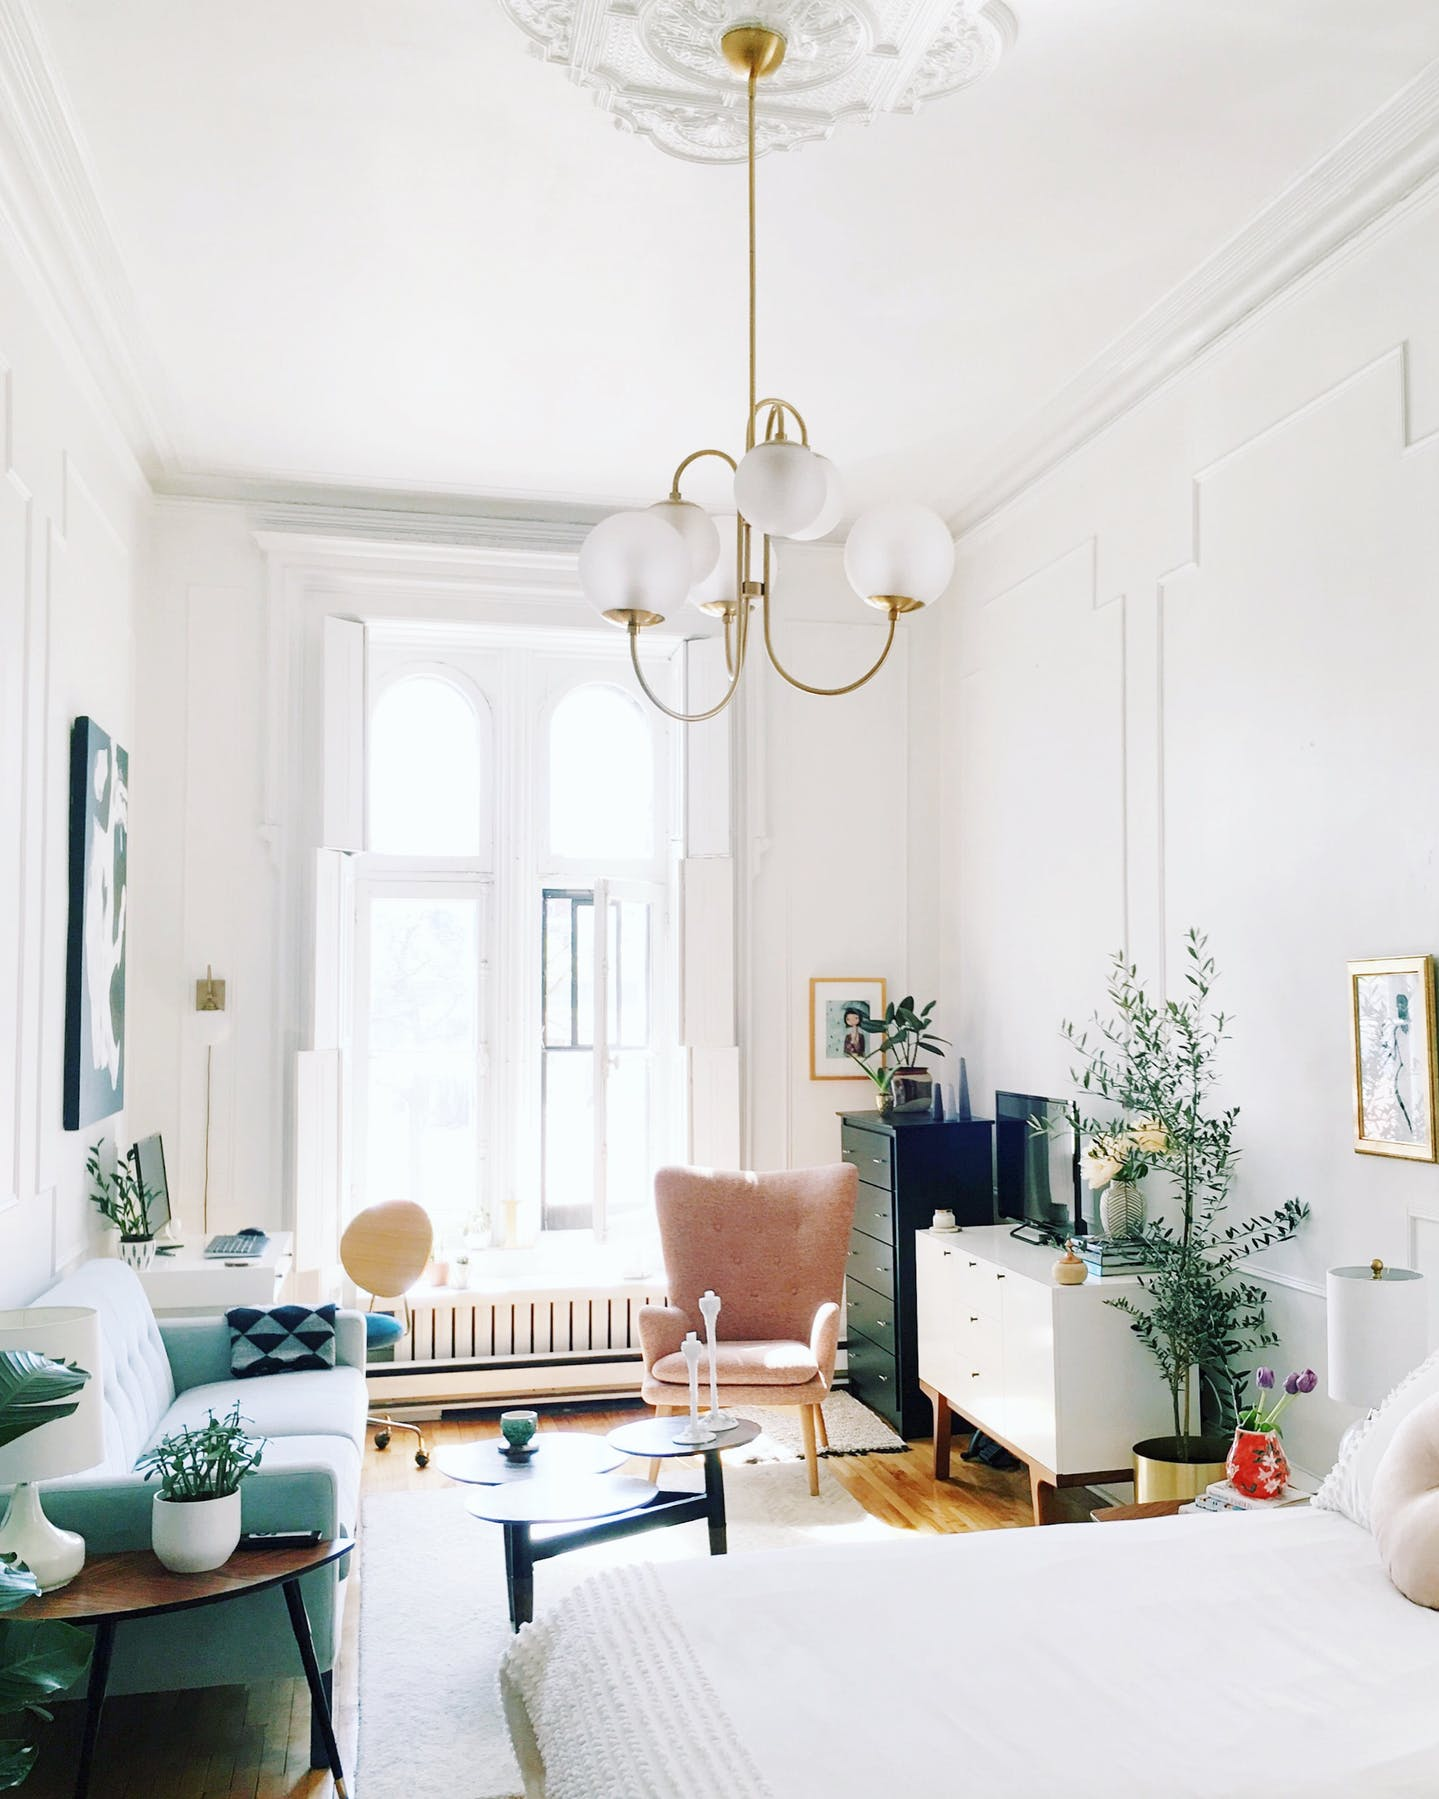 5 Small Apartment Decorating Tips To Make The Most of Your Space ...